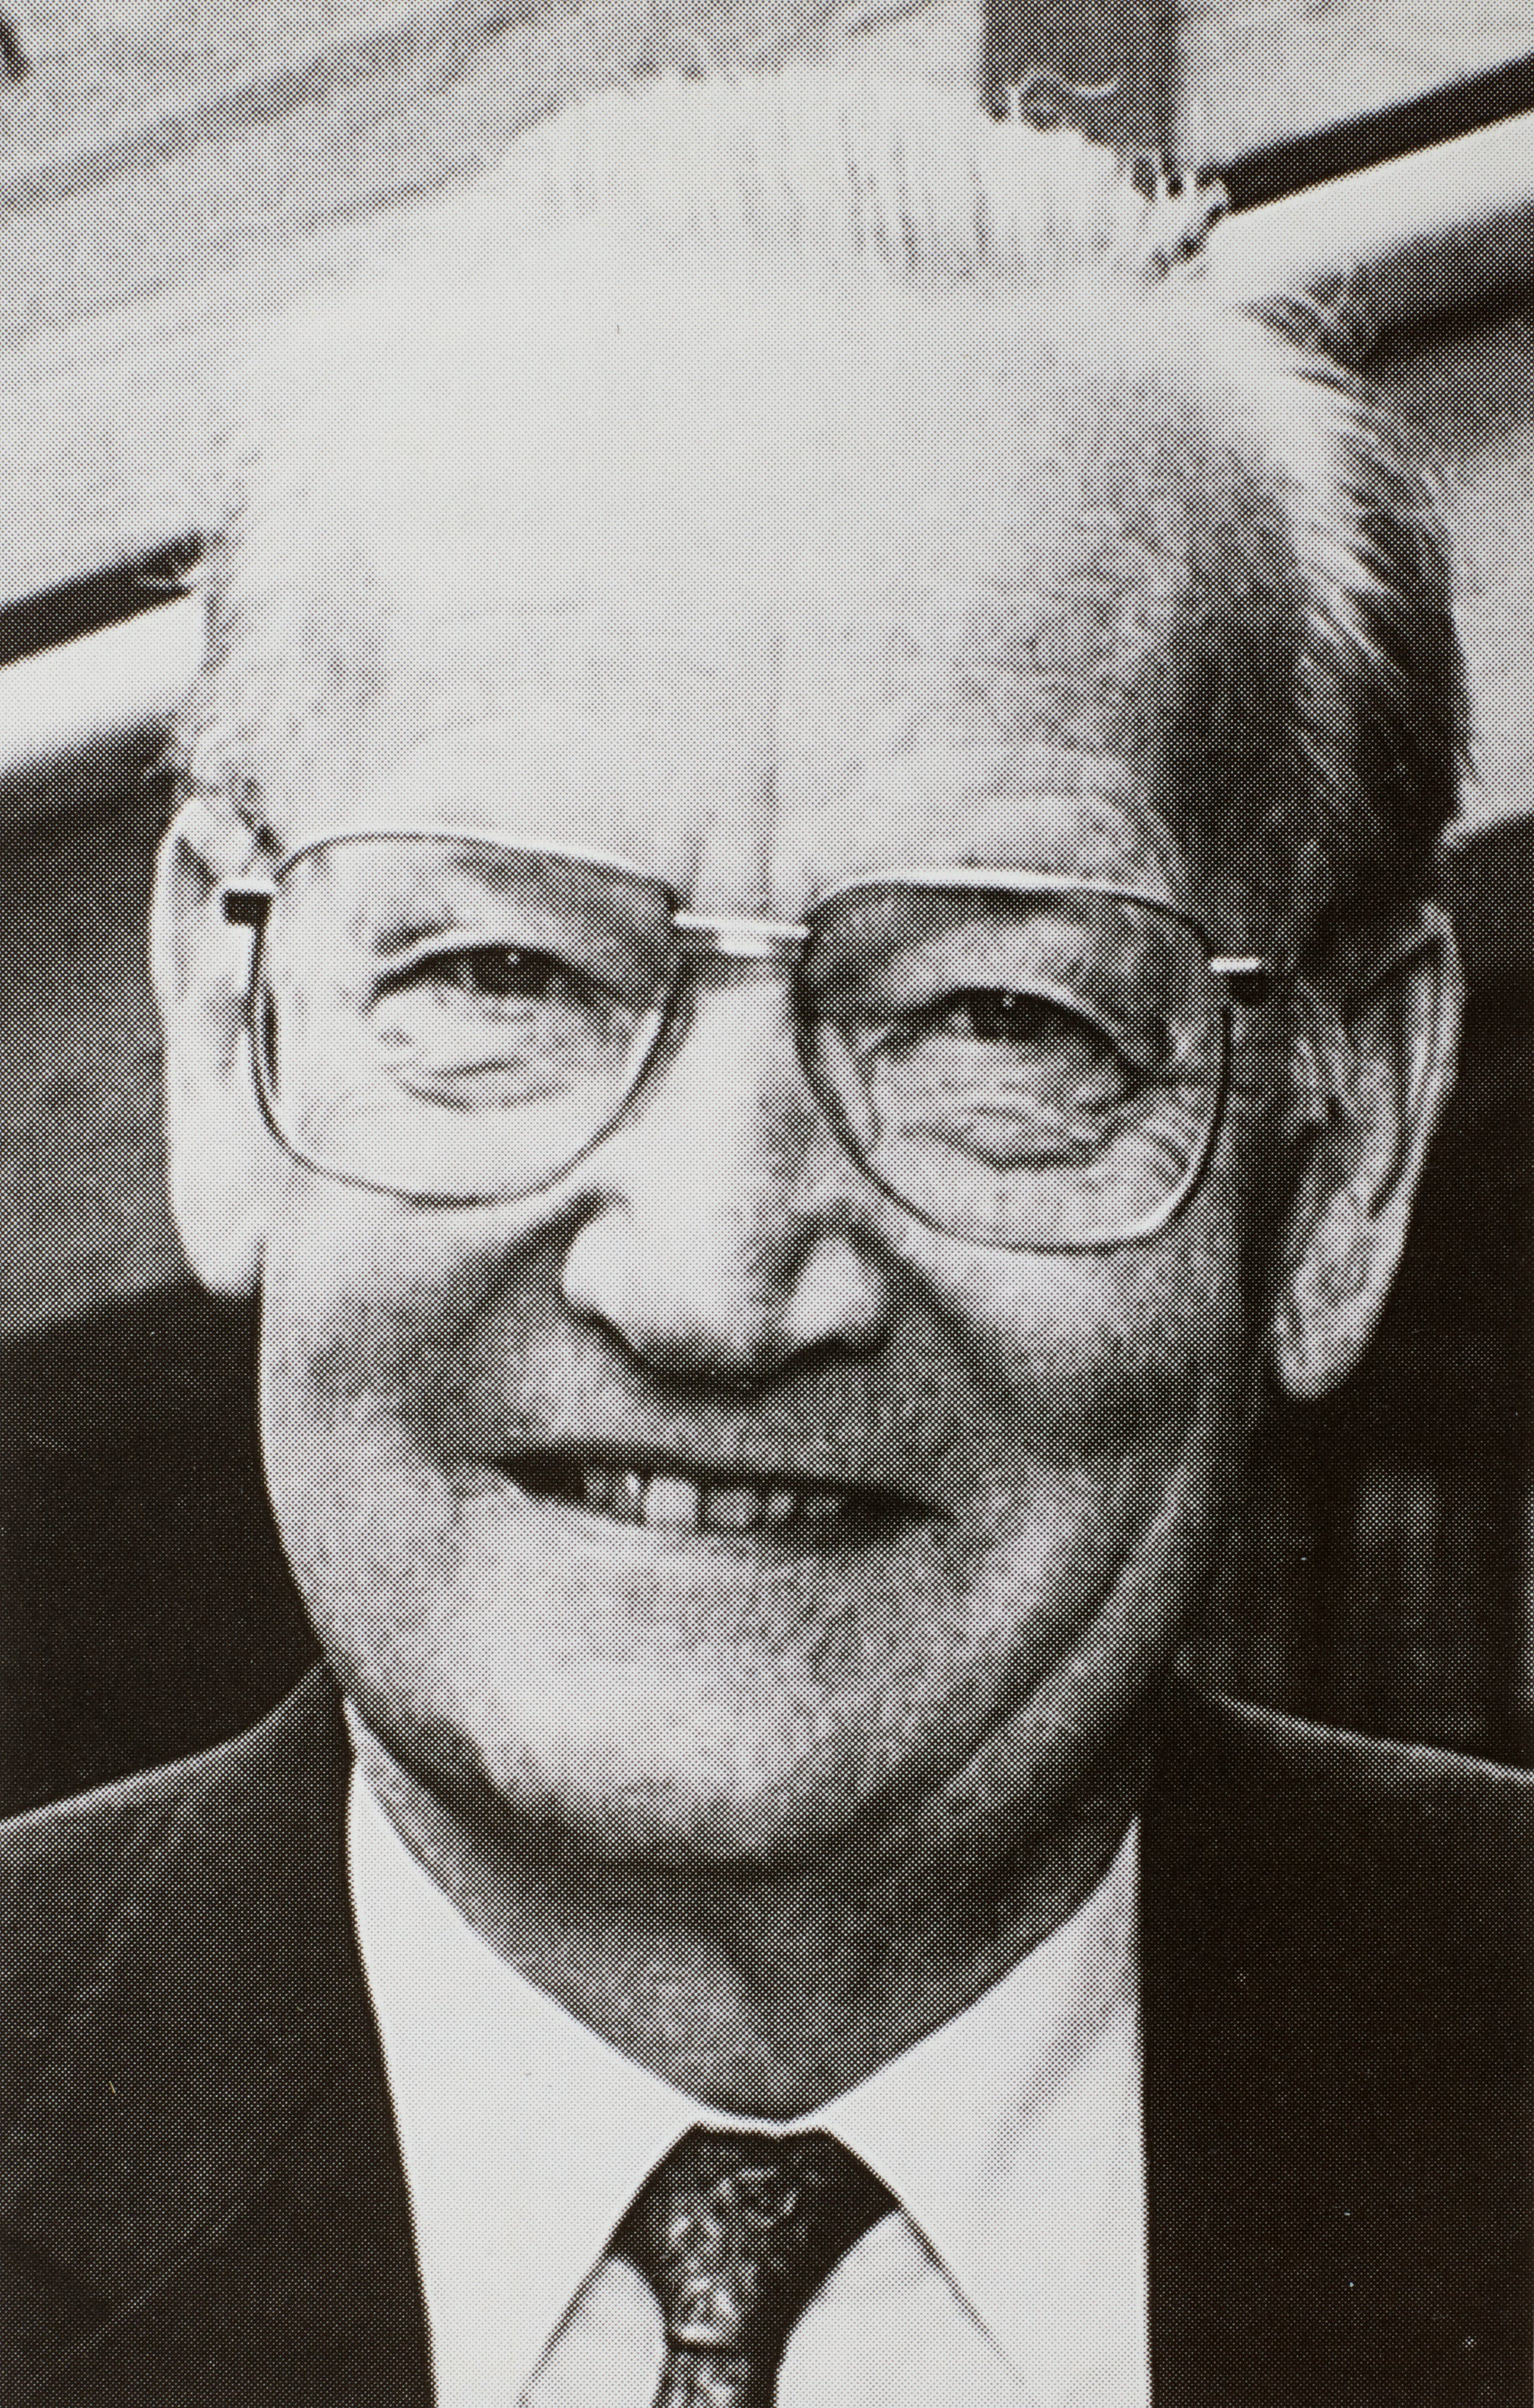 Jens Nørgaard - personal assistans to Claus Kähler. He was deeply involved in the proposal of splitting up the company in the early 1960s.